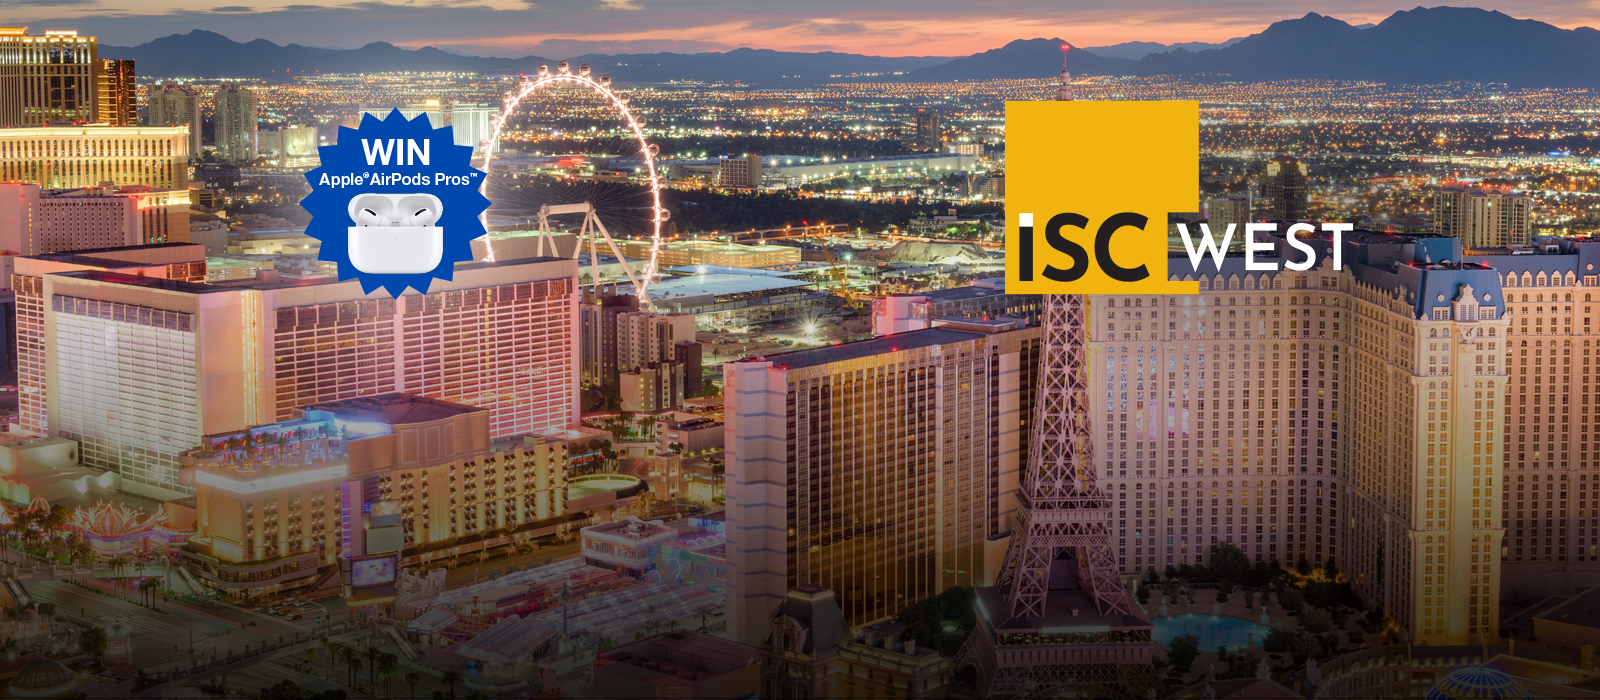 "See Us at ISC WEST 2020 Booth #8045<br />July 20-22 Sands Expo, Las Vegas, NV<br /><span style=""font-size: 25px;"">Visit Our Booth to Win Apple AirPods Pros</span>"